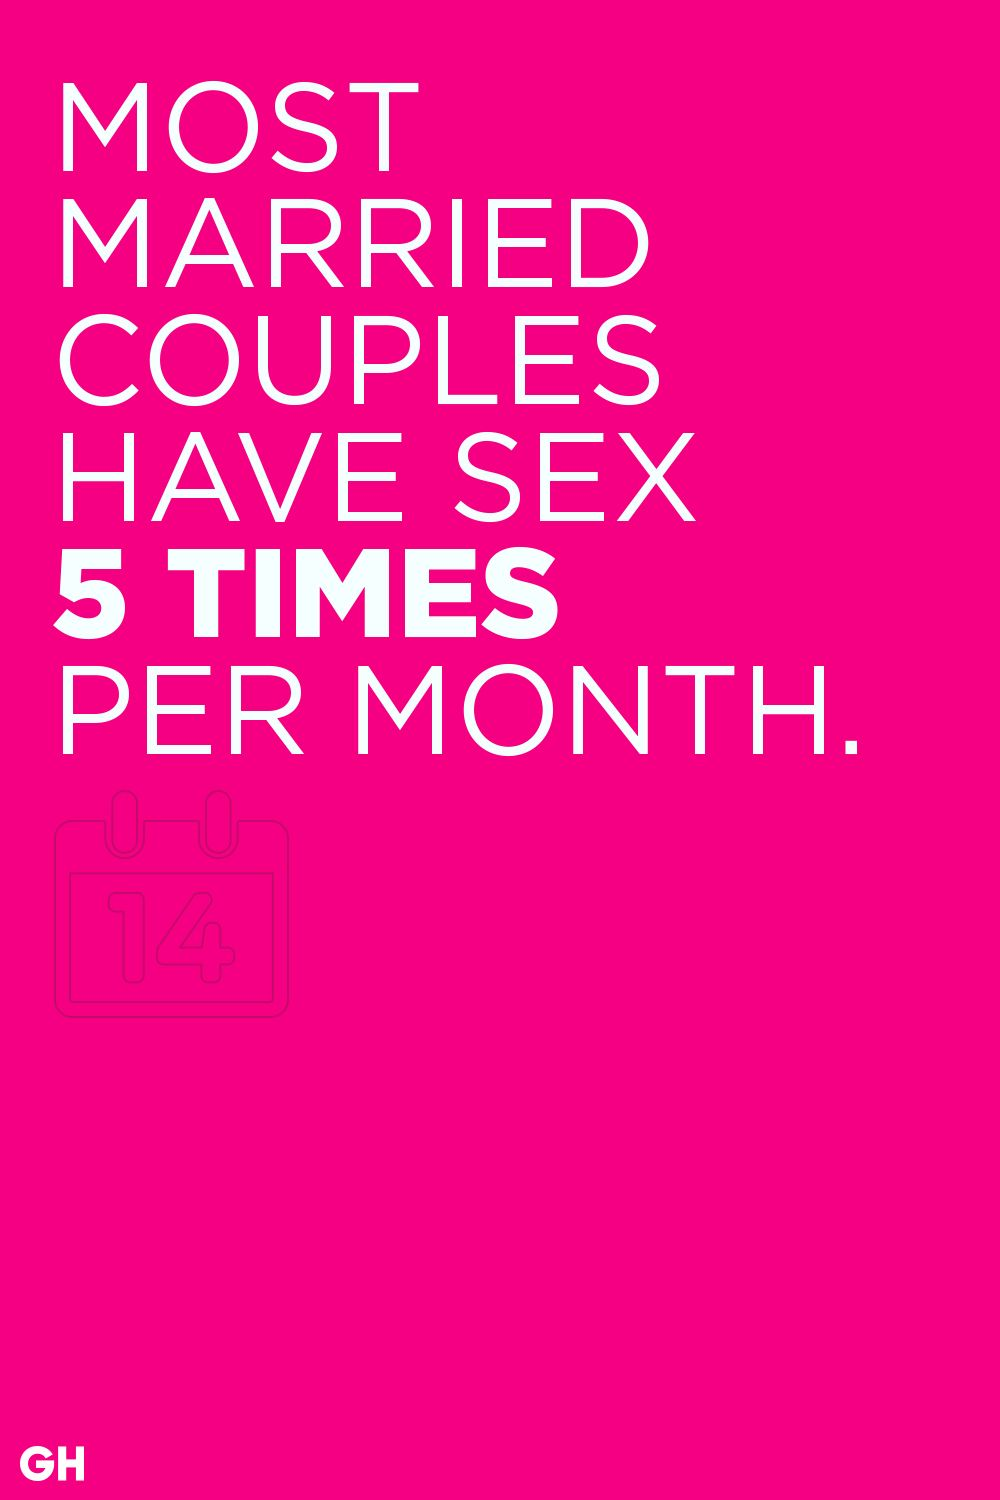 couples married sex stats